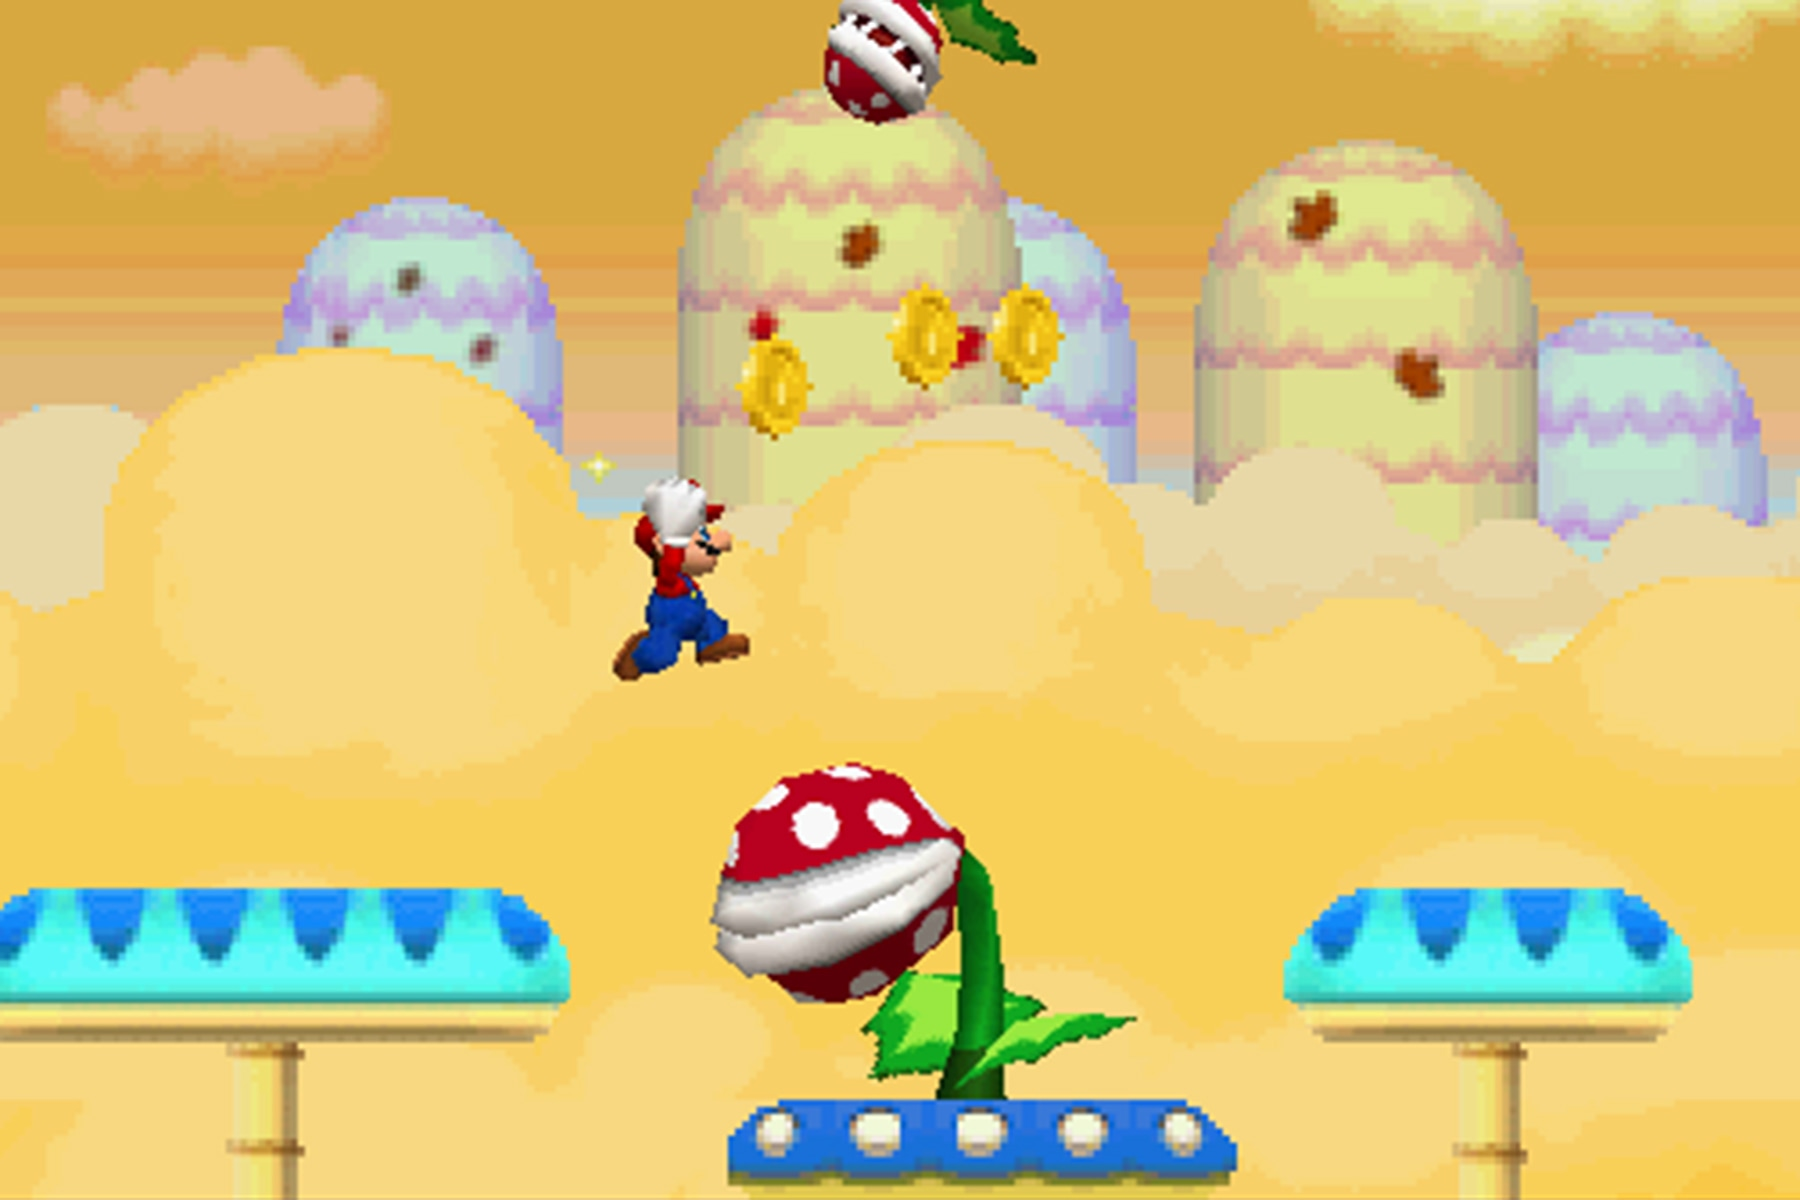 Fans make 80 new levels for new super mario bros newer team gumiabroncs Gallery